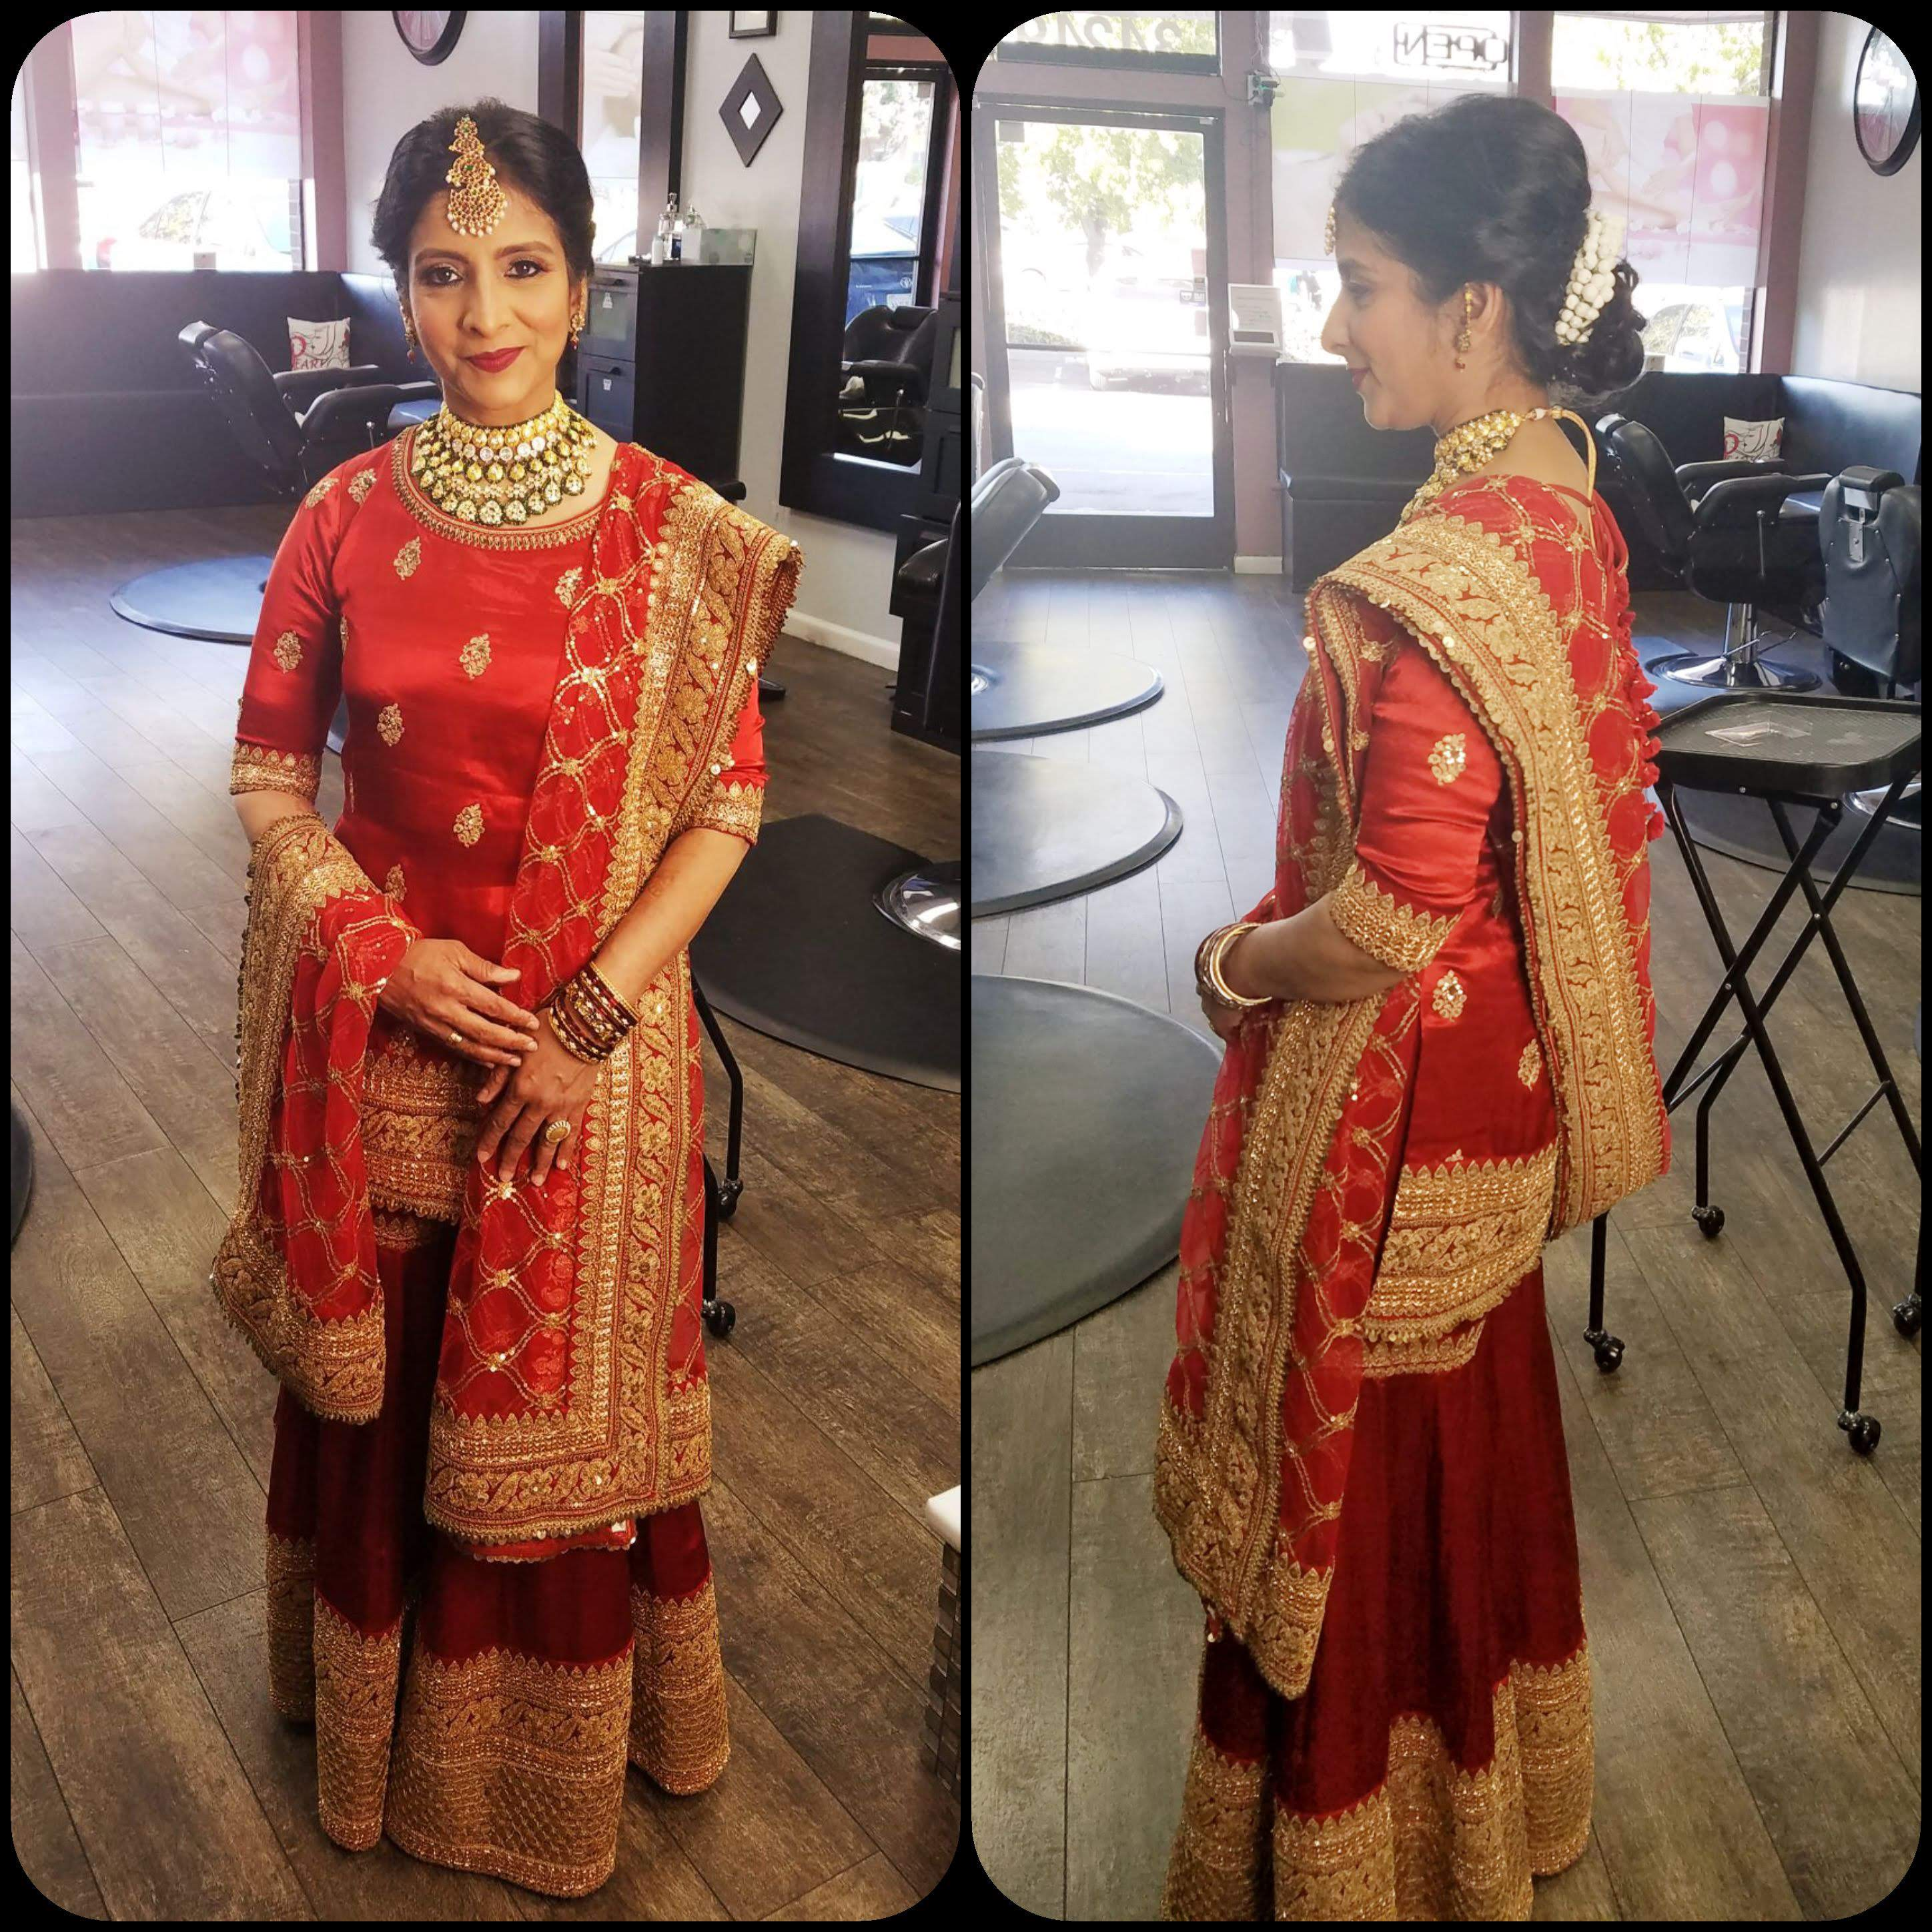 Nikhat 25th Wedding Anniversary in Sabyasachi outfit @ The Grand Trunk - The Grand Trunk